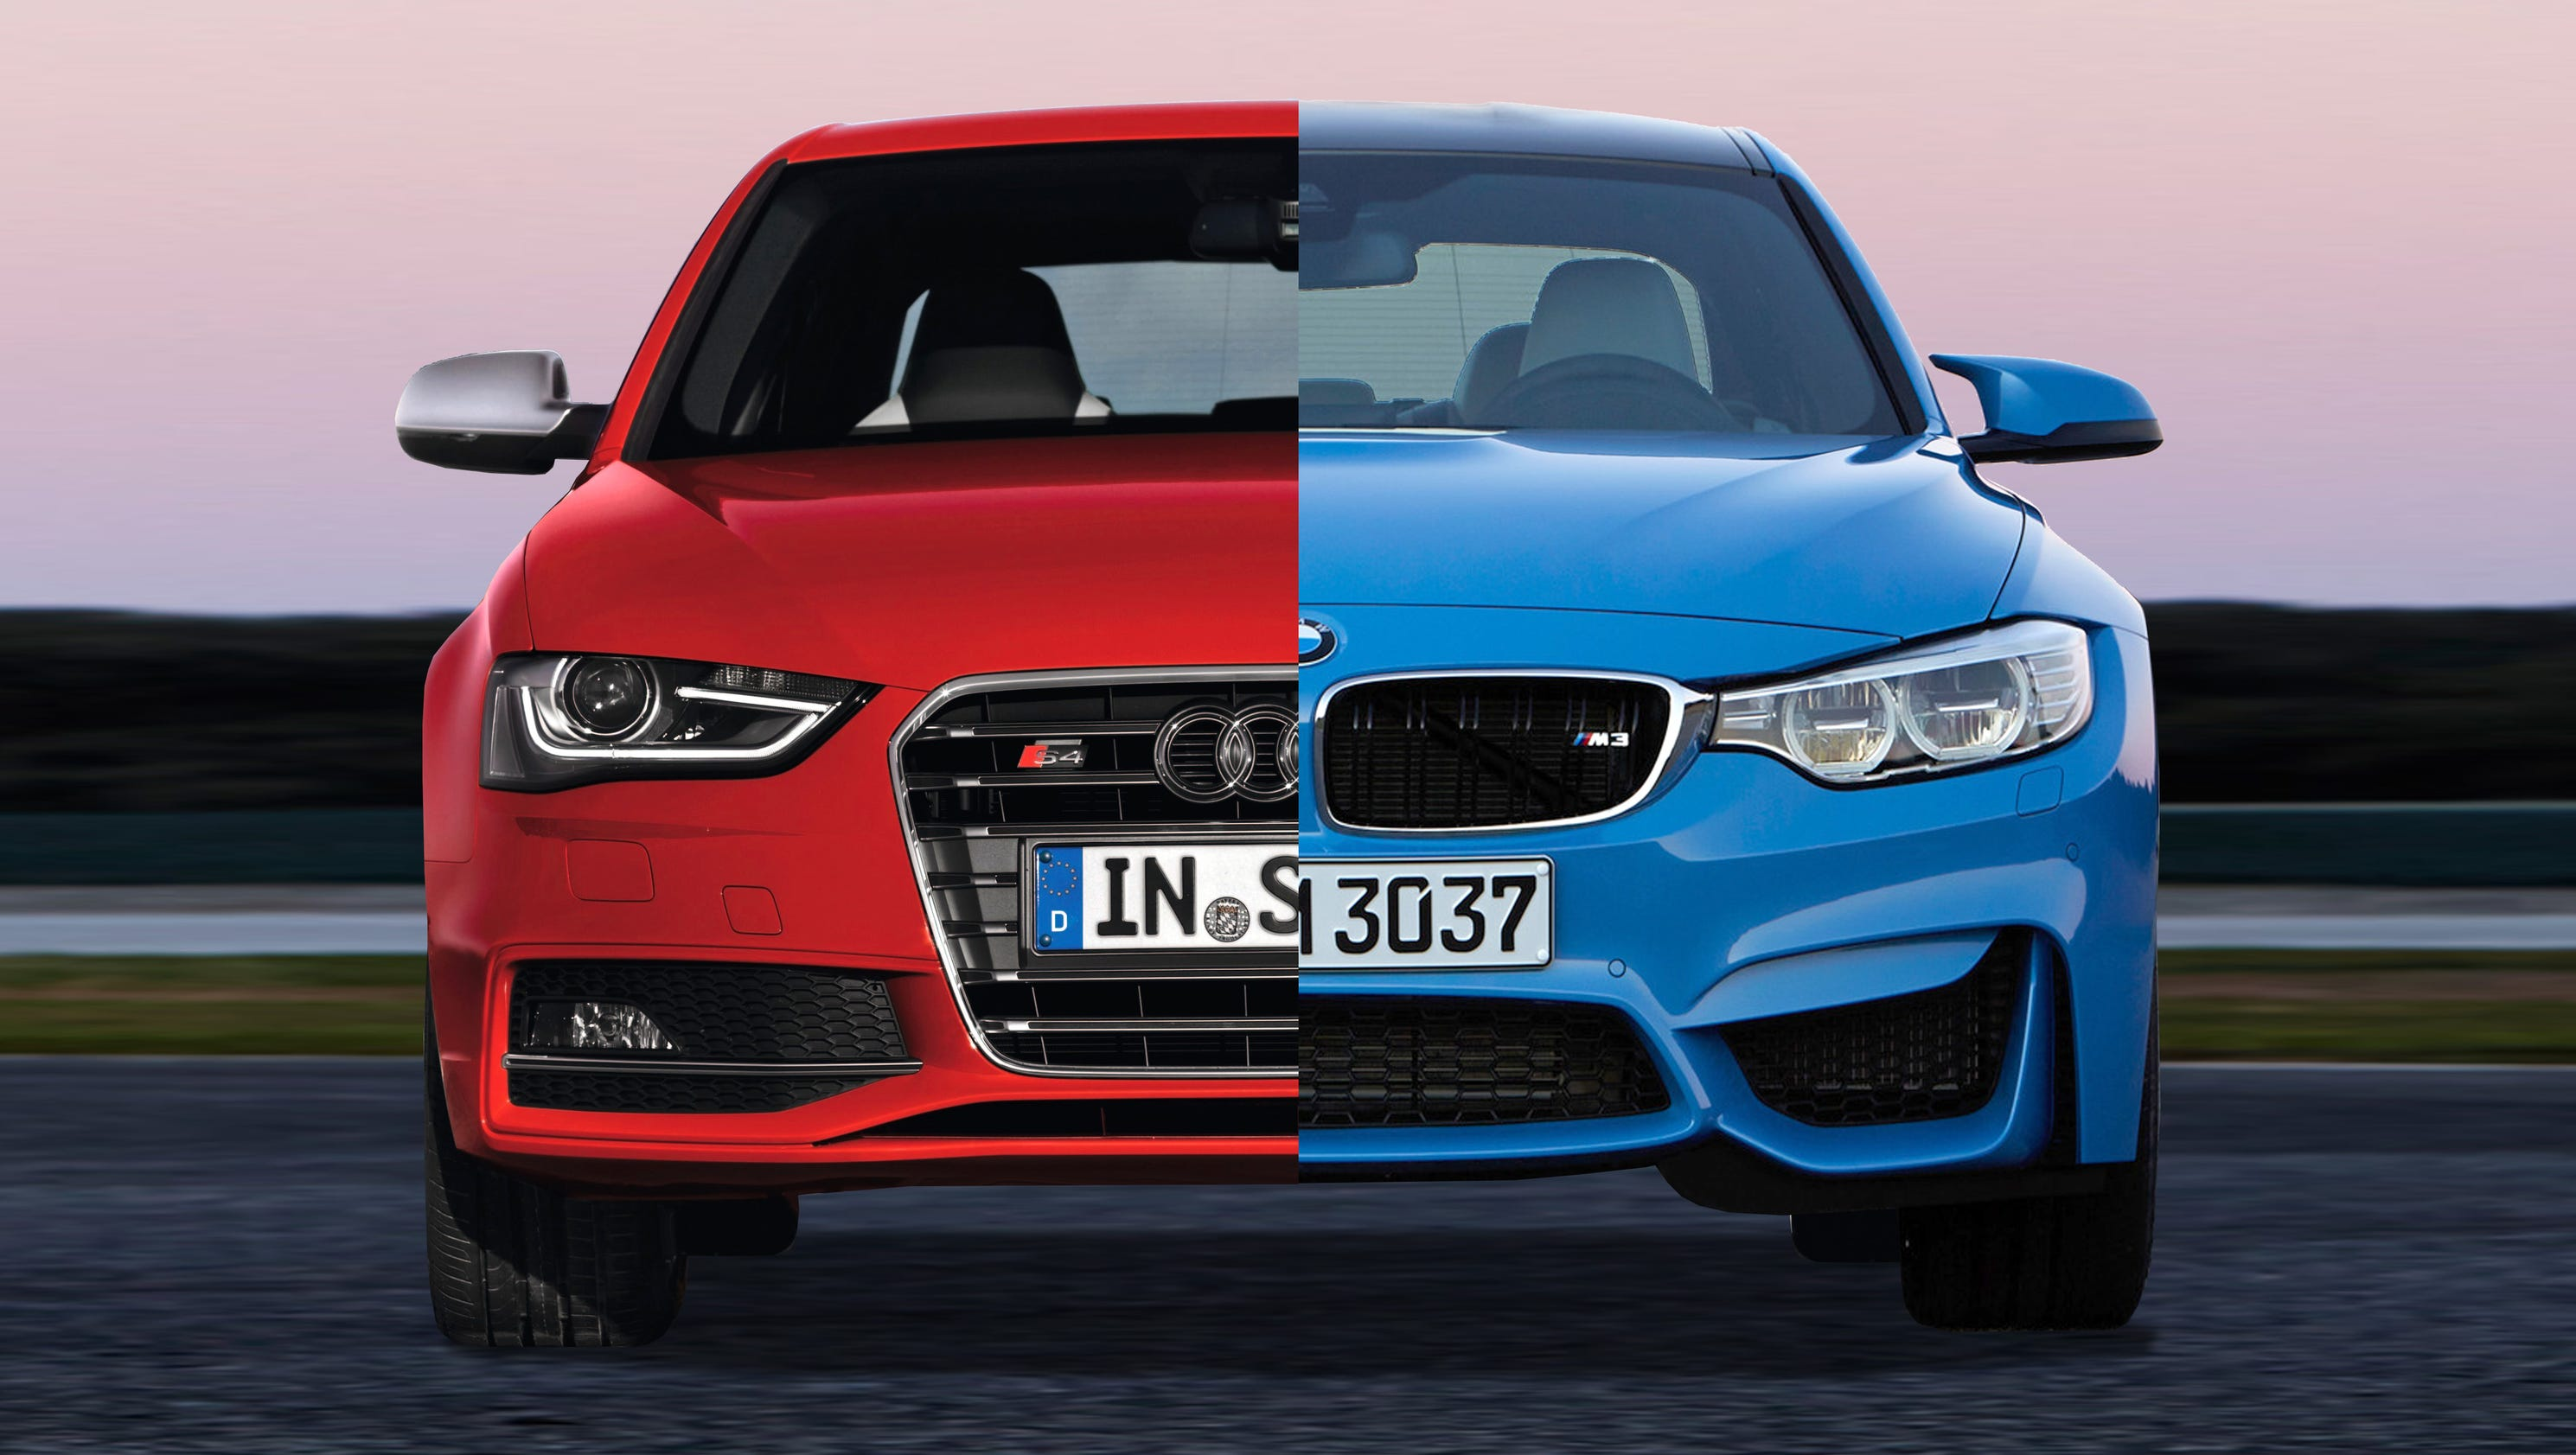 payne teutonic sedan showdown bmw m3 vs audi s4. Black Bedroom Furniture Sets. Home Design Ideas